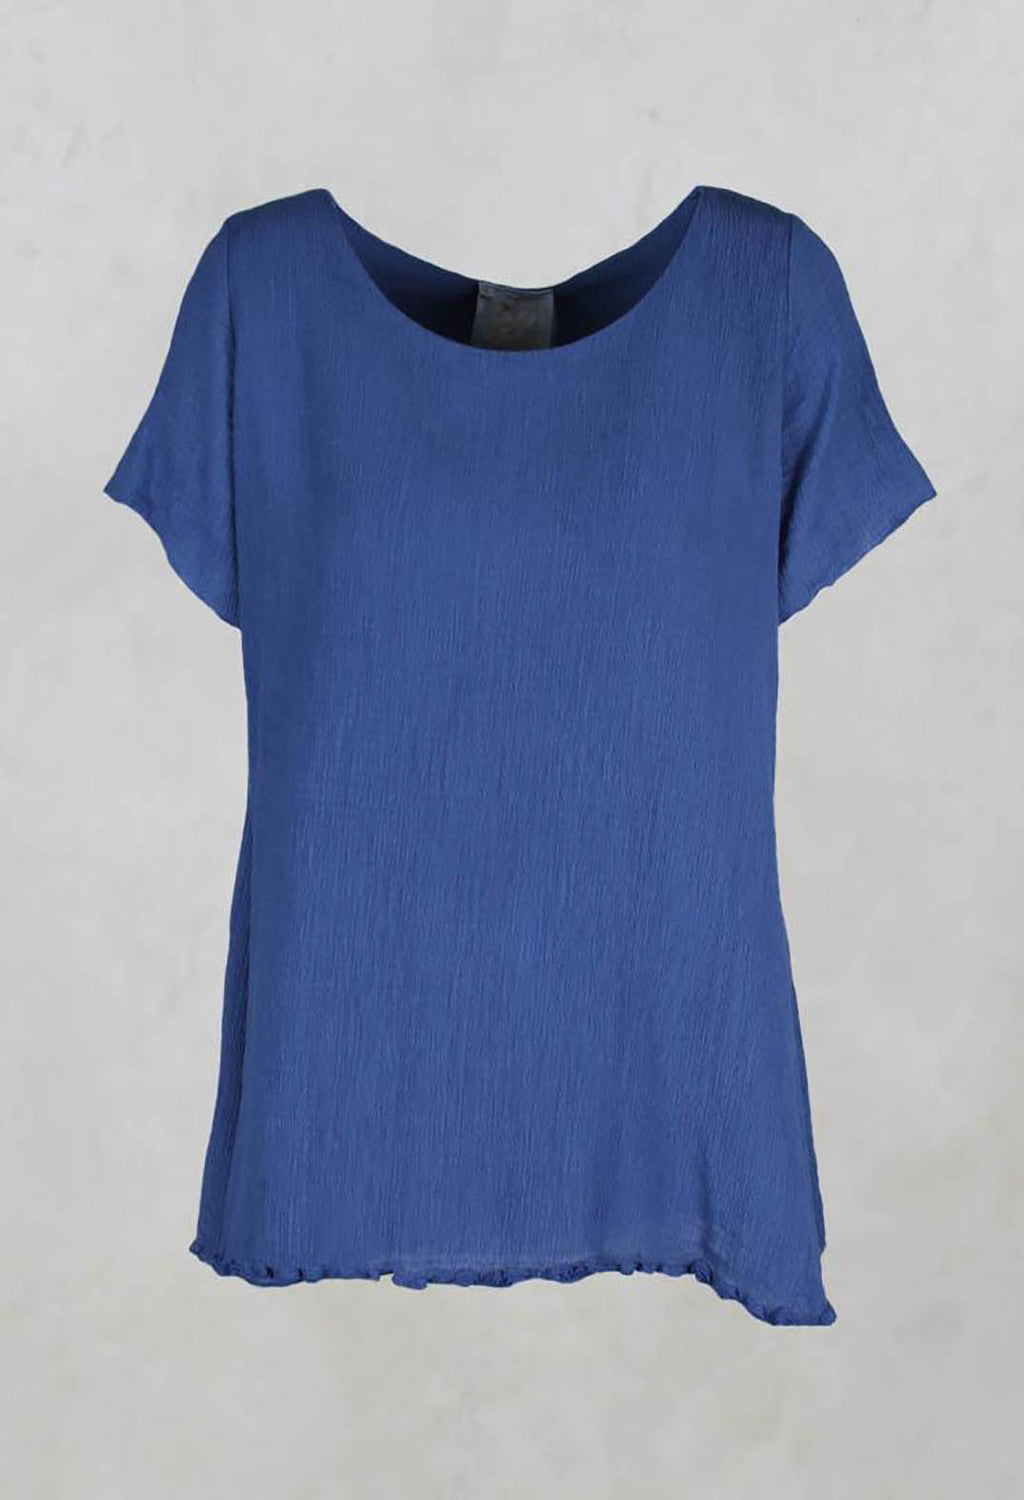 Double Layer Top in indigo